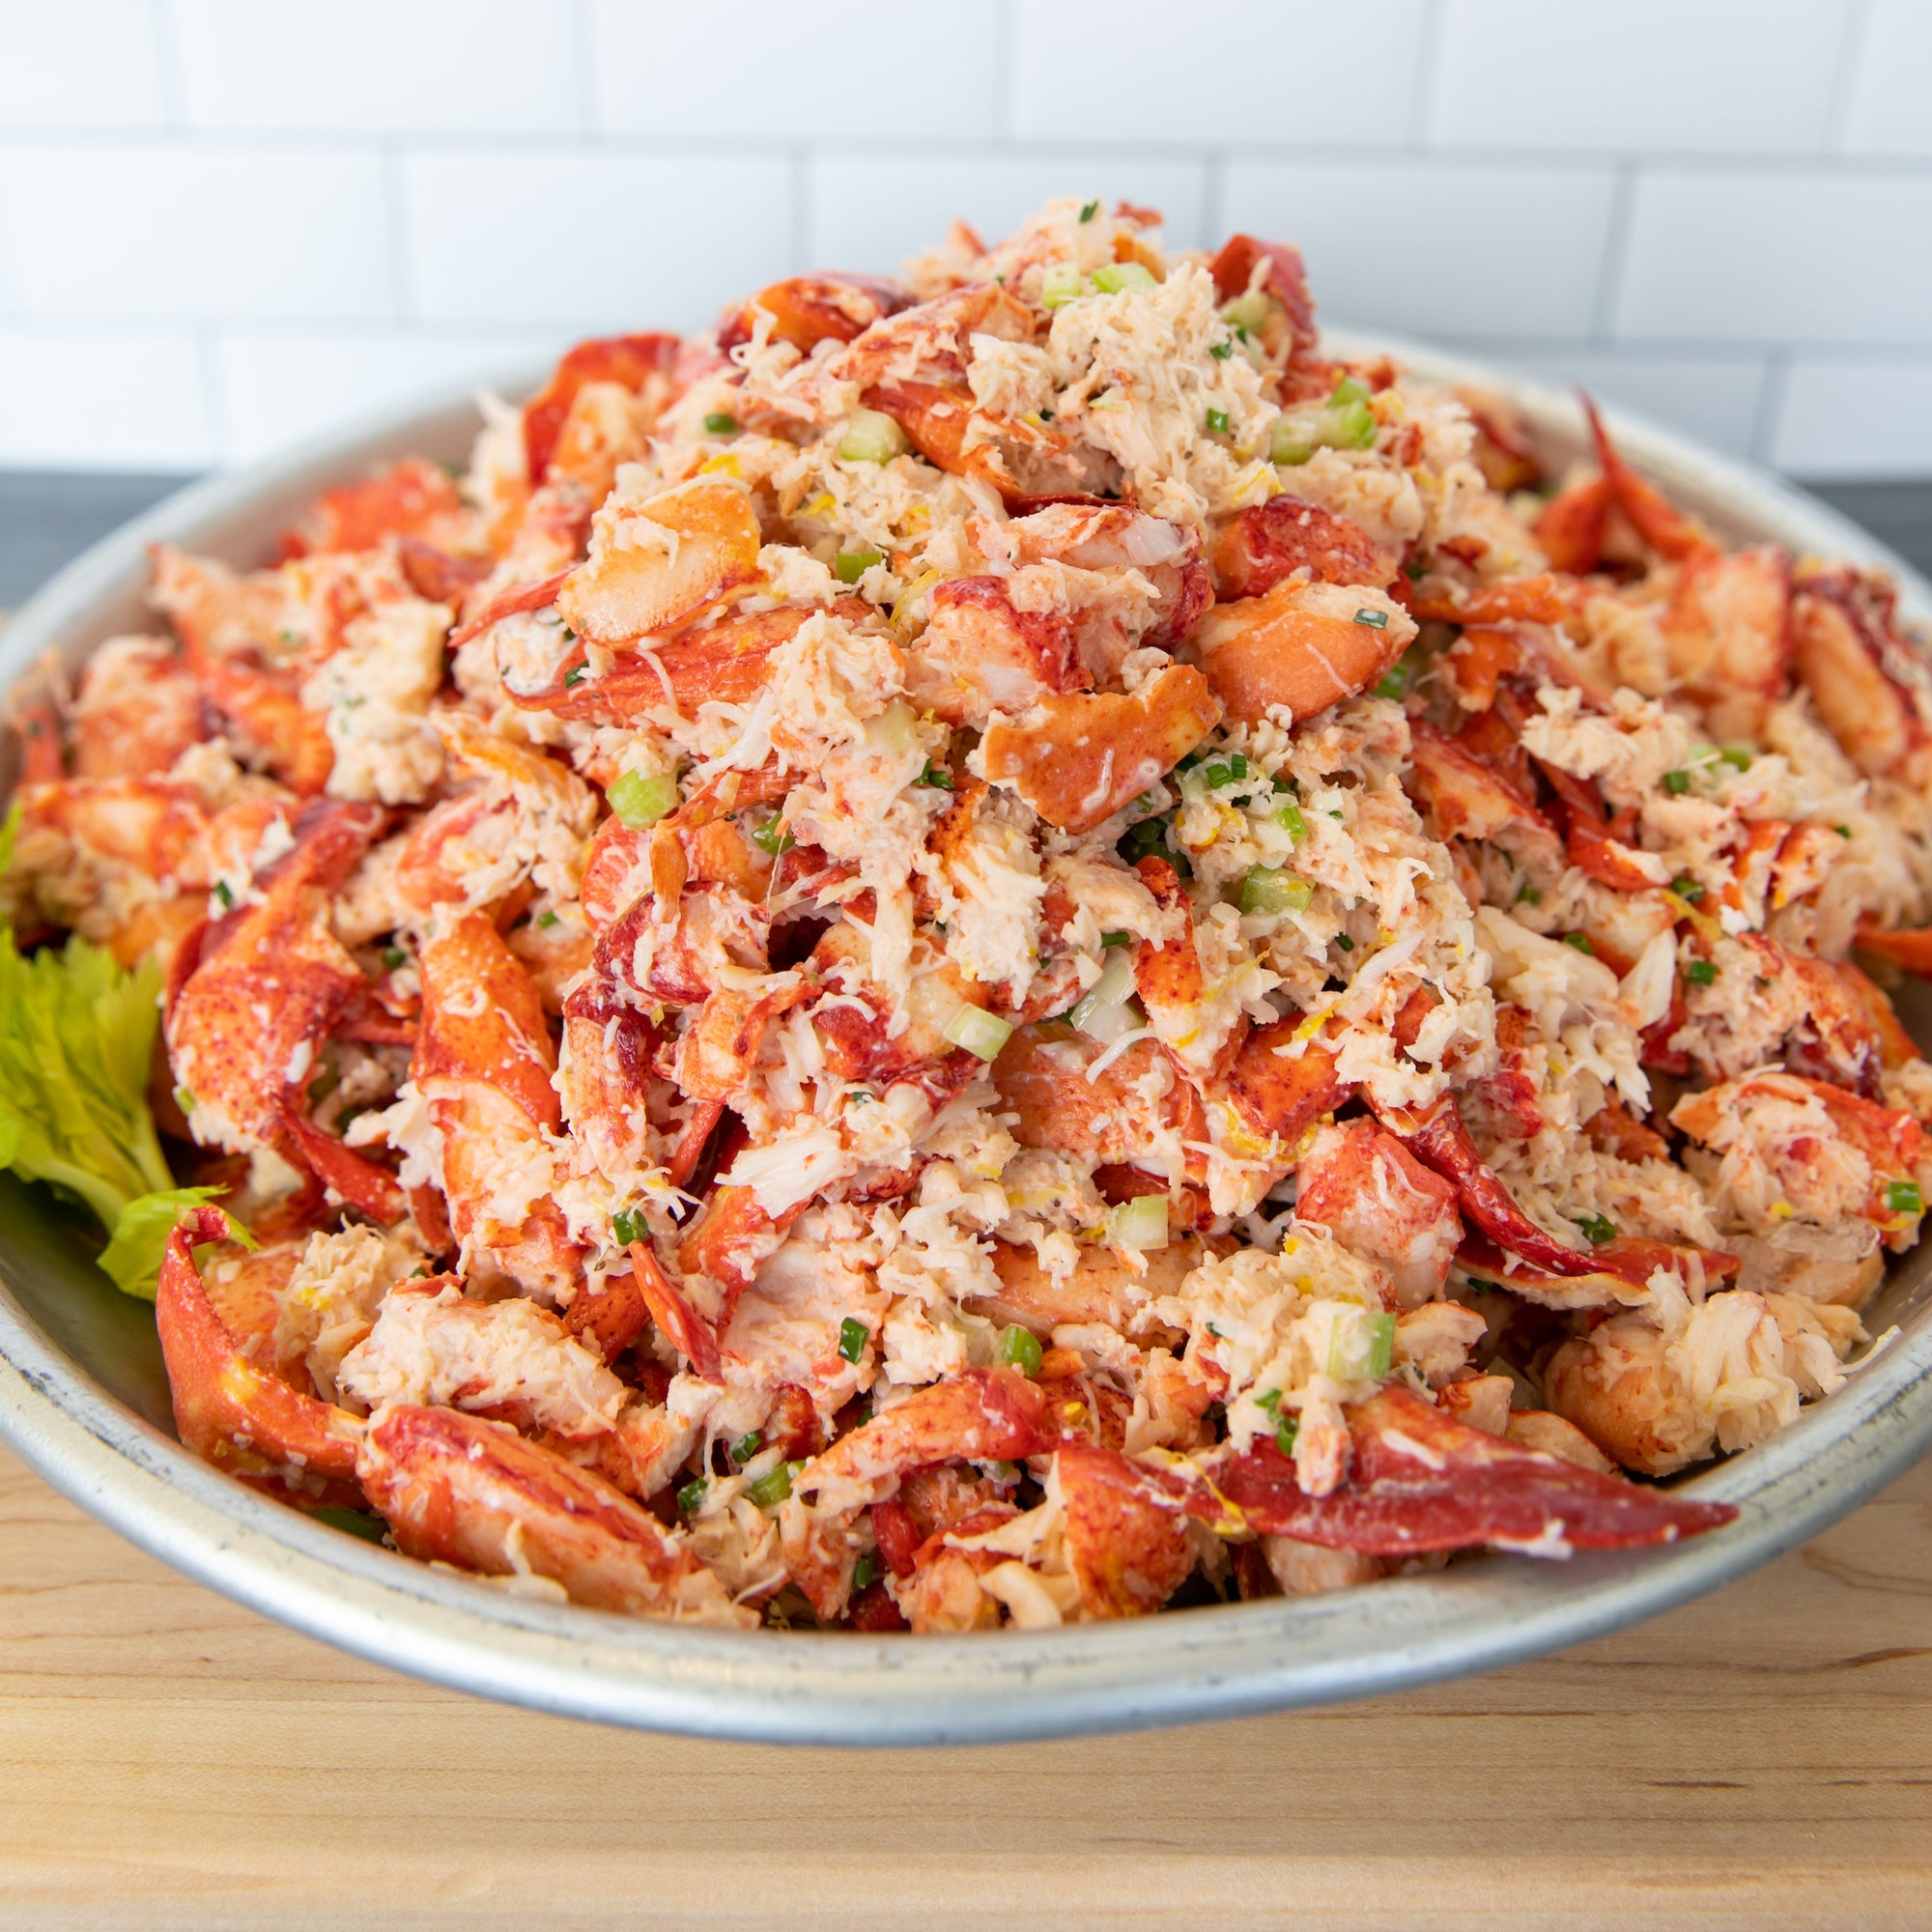 Buy Lobster Salad Online